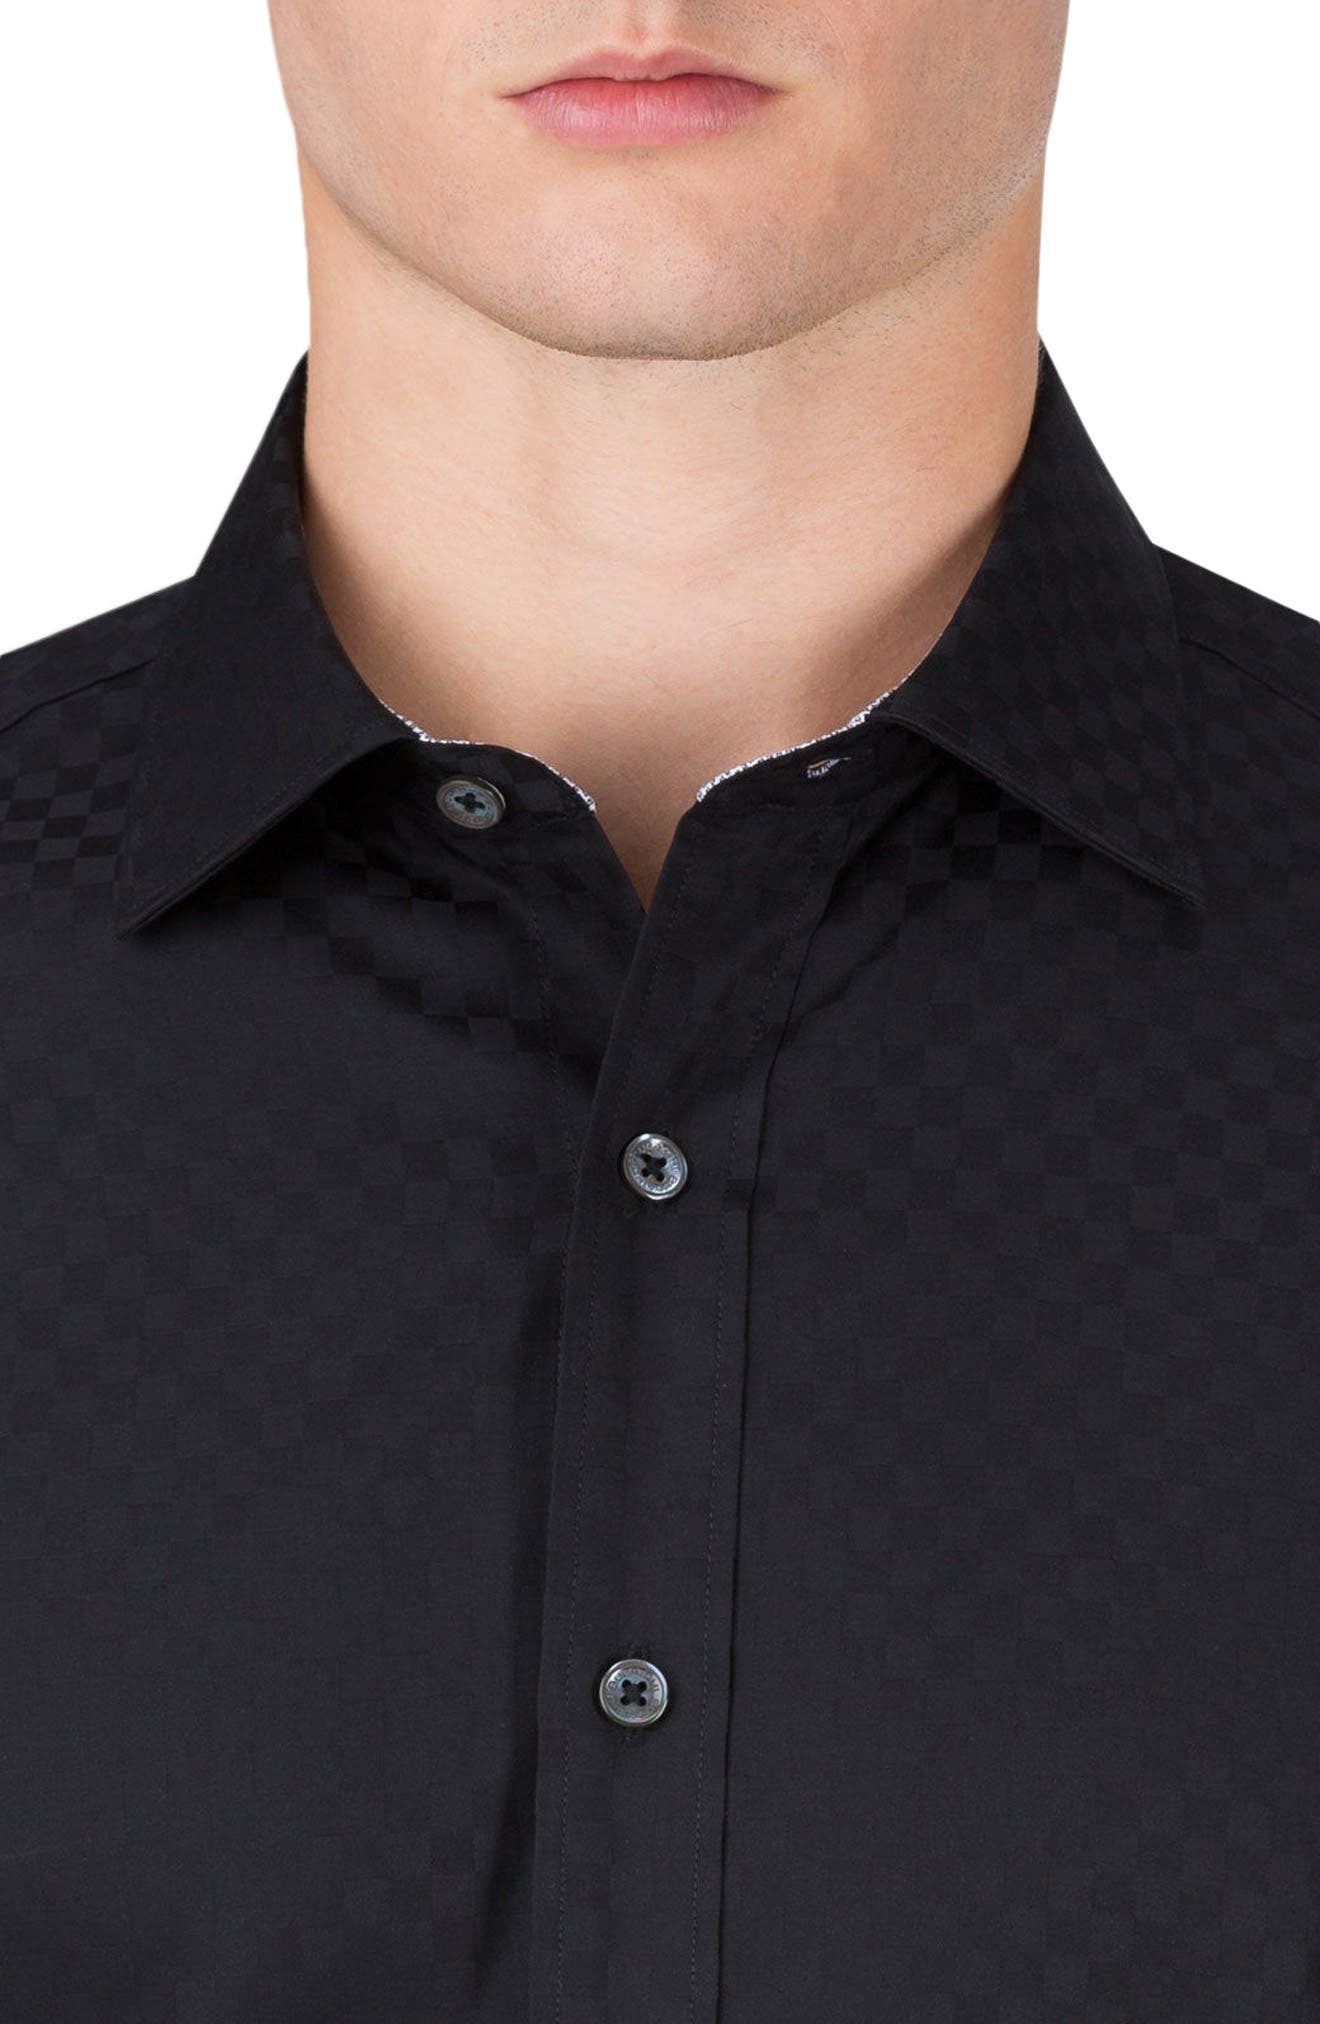 Classic Fit Checkerboard Sport Shirt,                             Alternate thumbnail 3, color,                             001